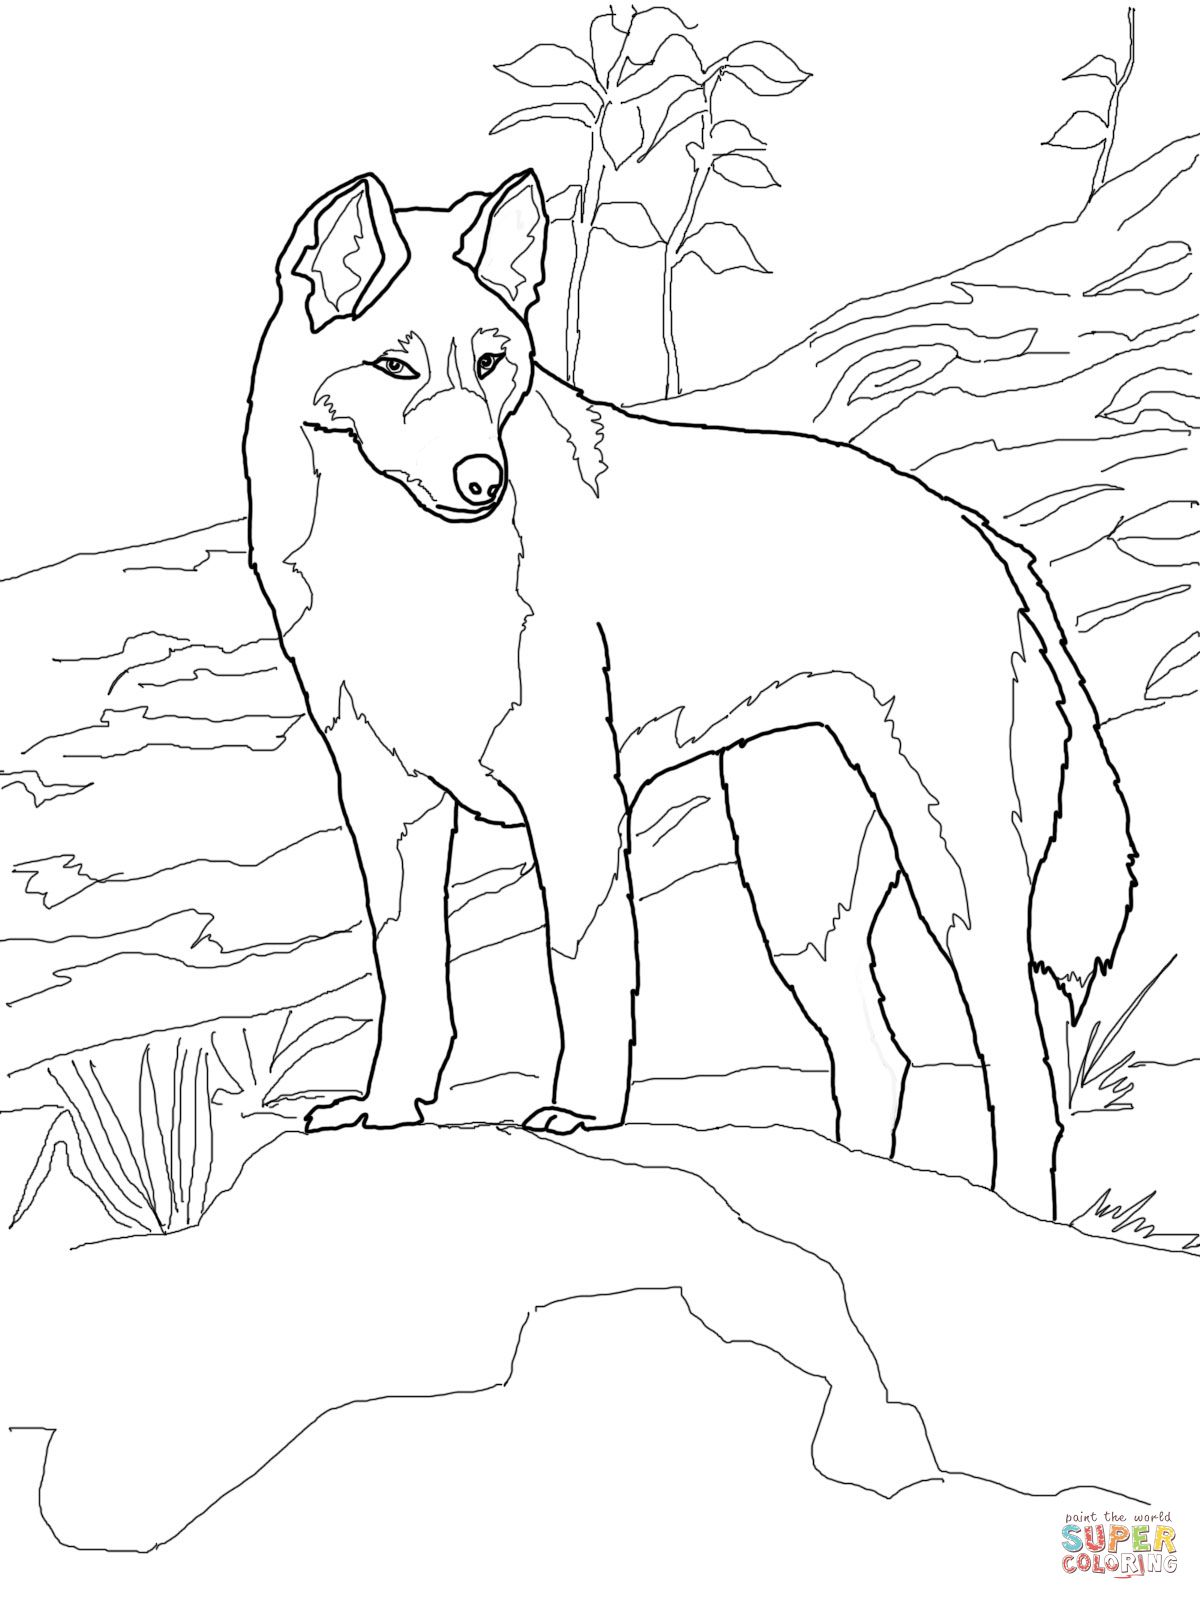 Dingo From Australia Coloring Page Supercoloring Com Dog